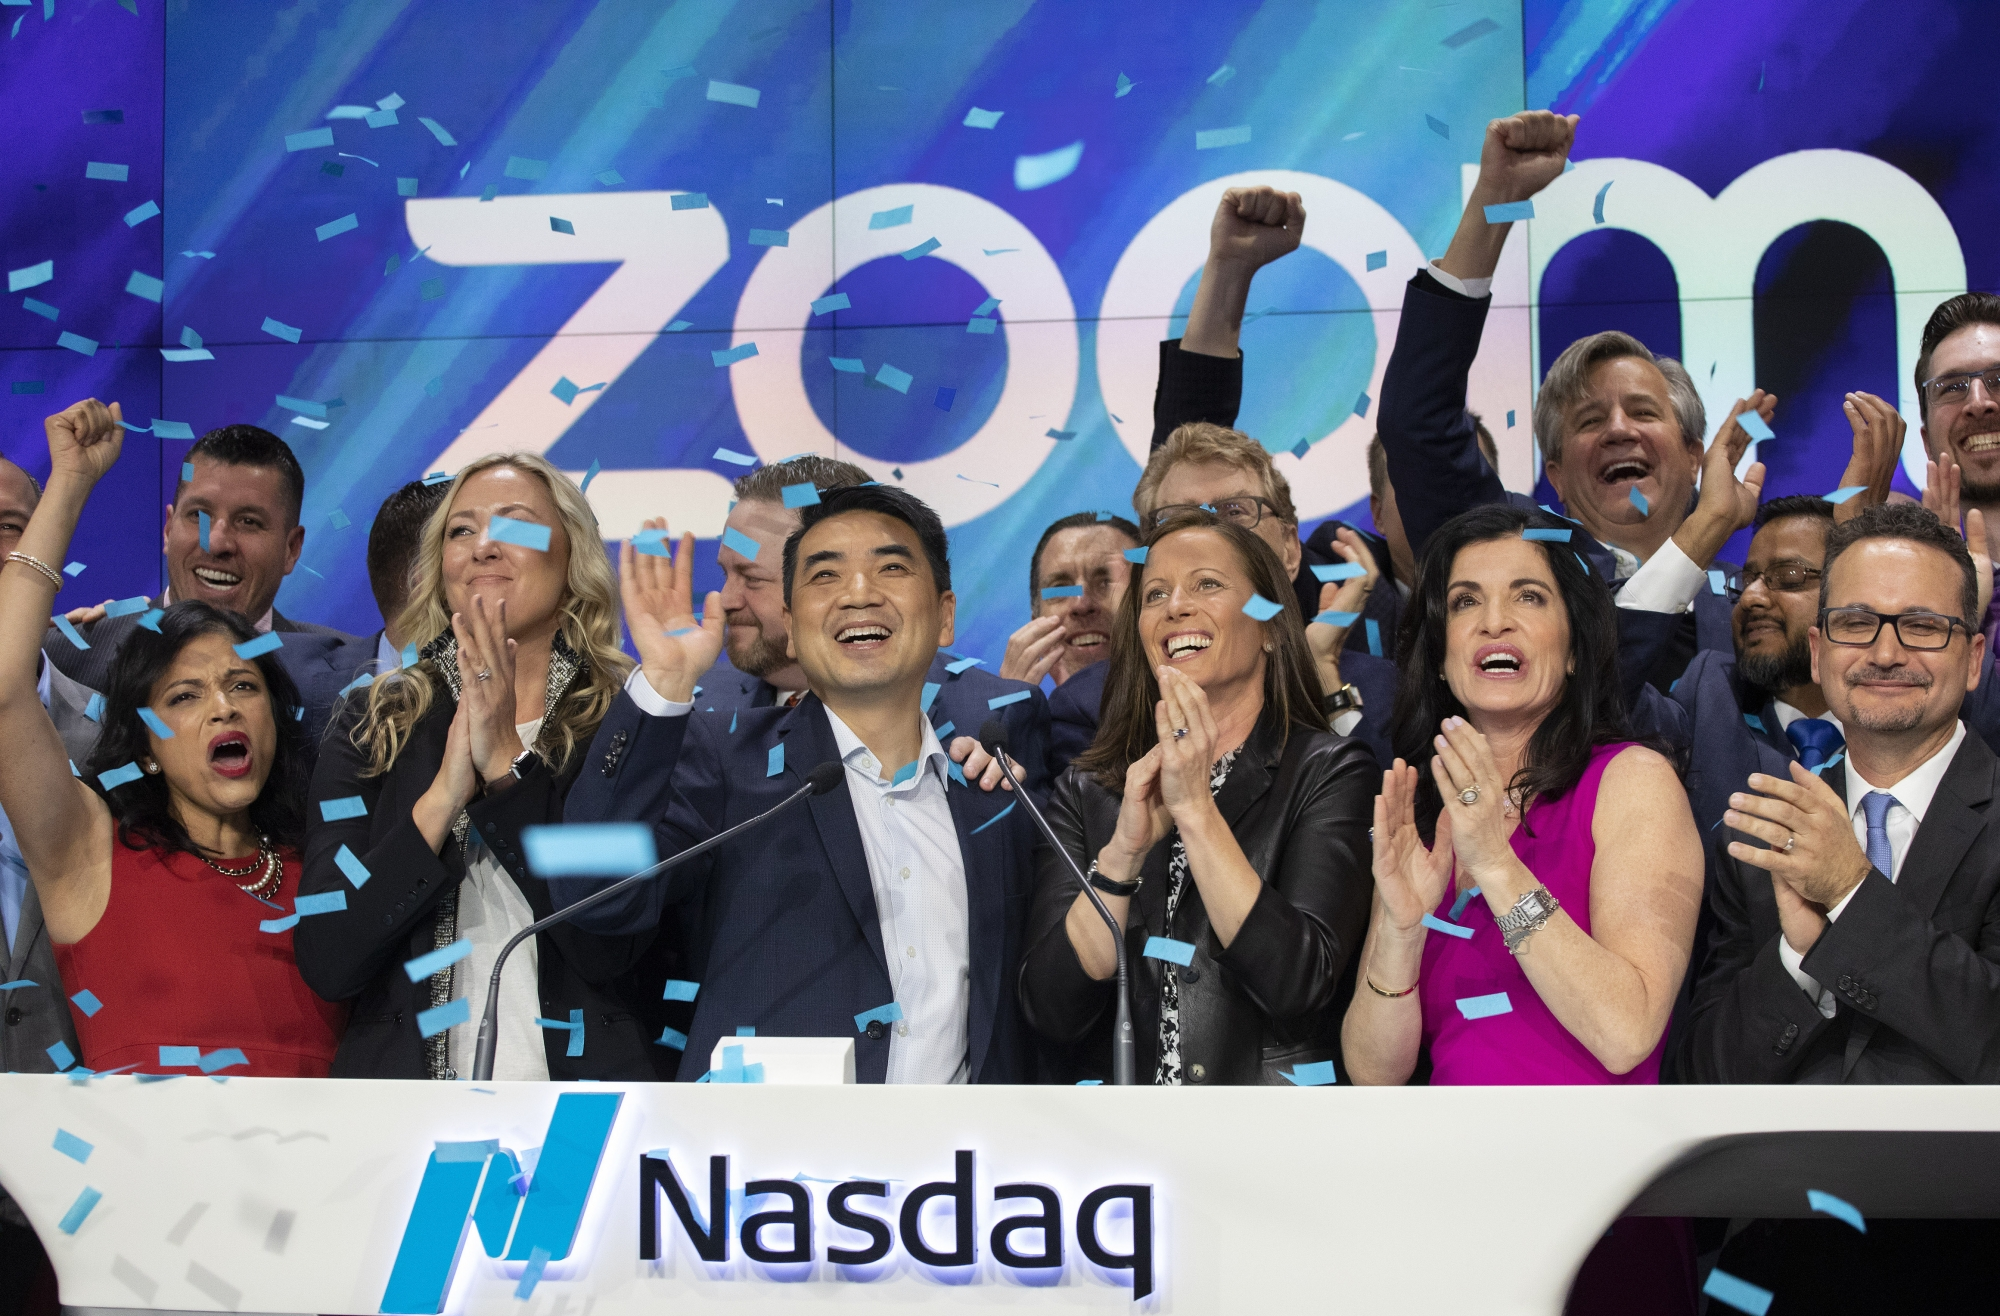 IPO mania: Zoom zooms, Pinterest pins down Wall Street | WTOP